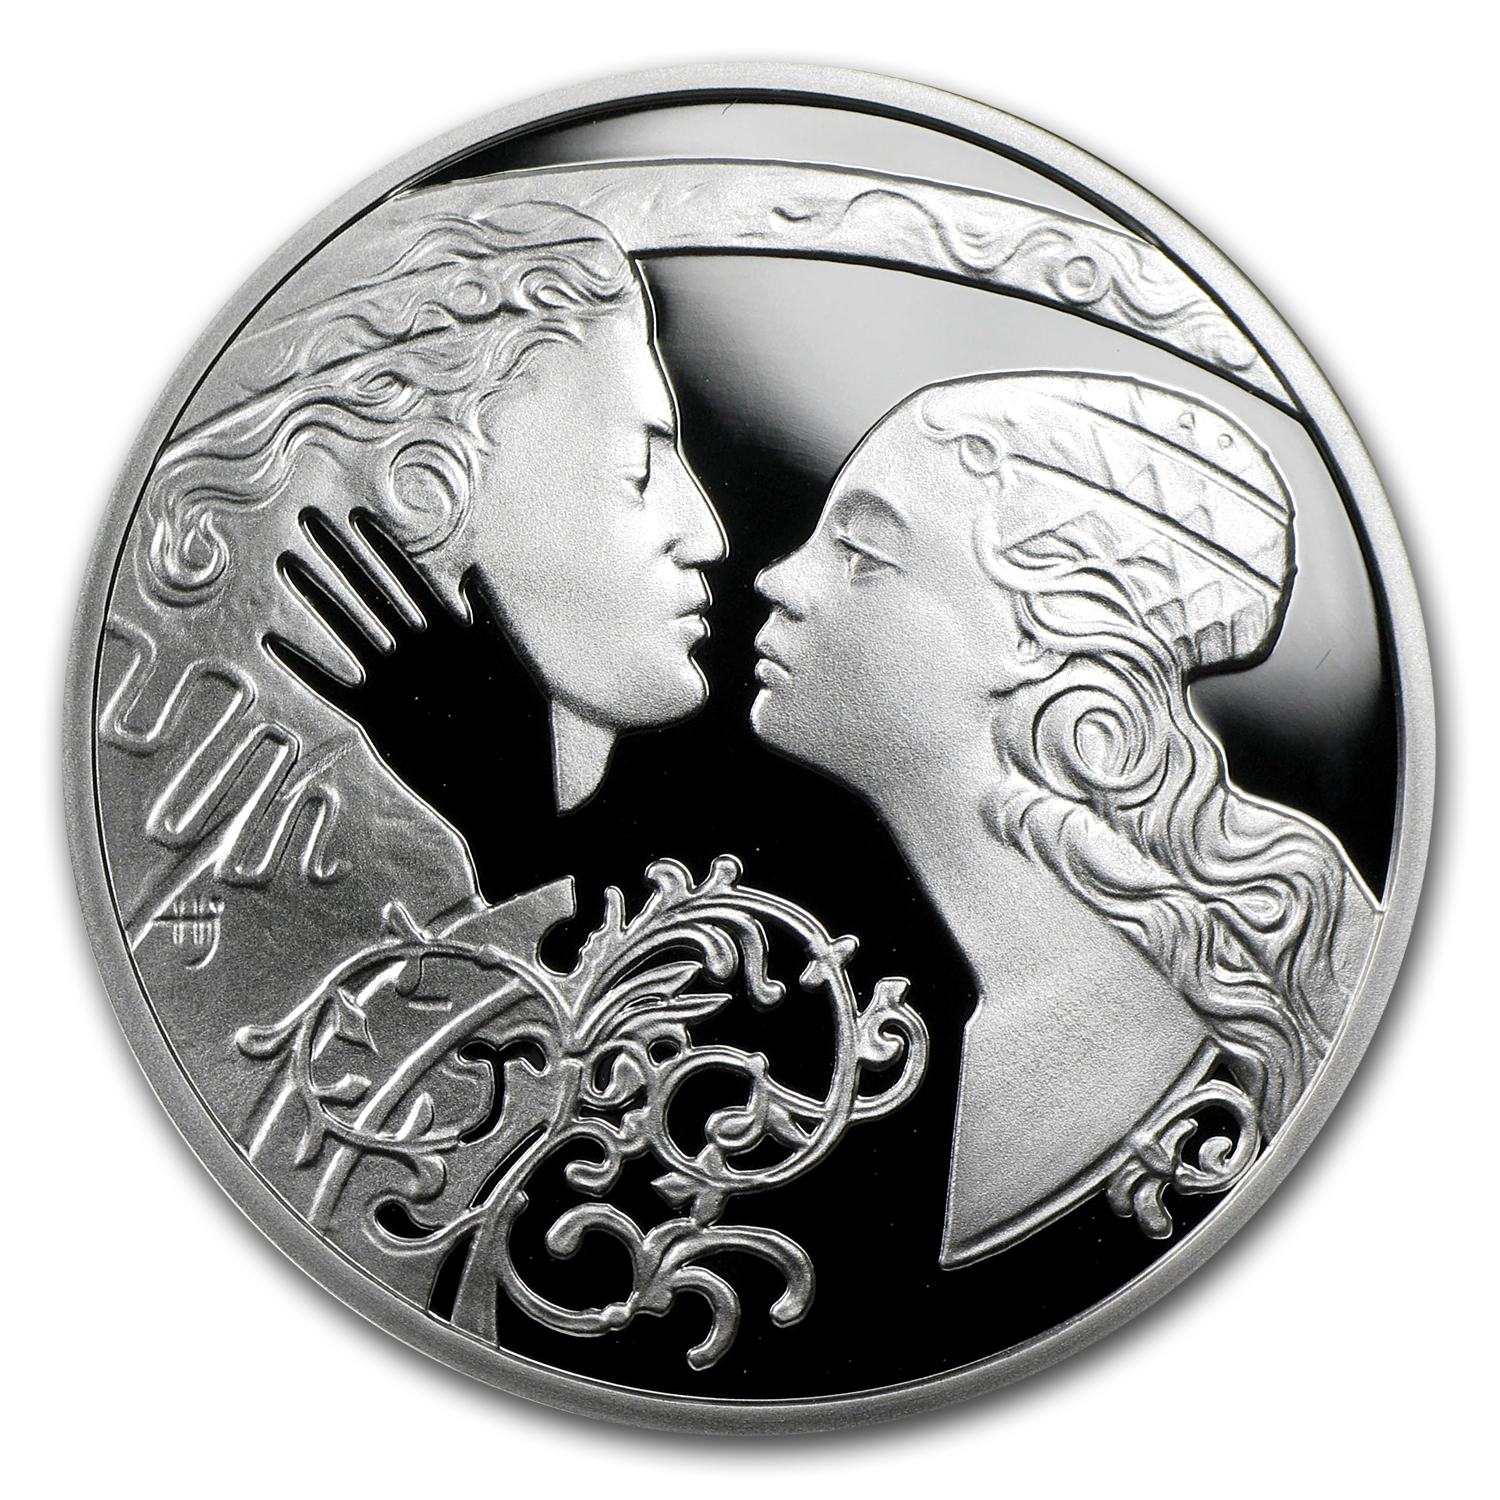 Niue 2010 Proof Silver $1 Famous Love Stories - Romeo and Juliet